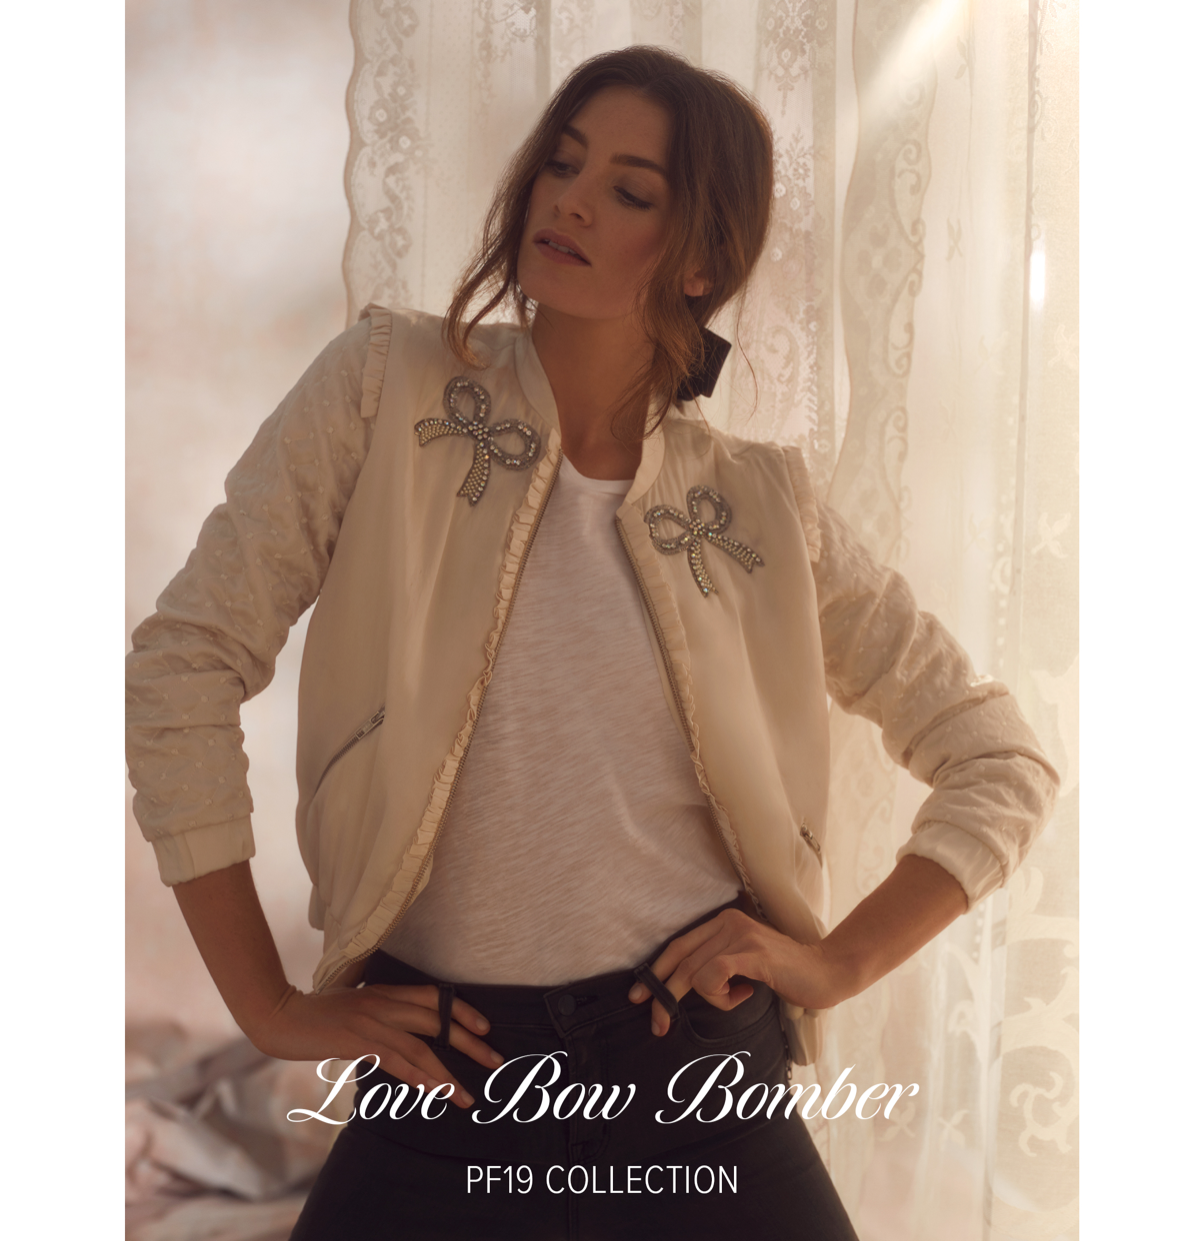 Love Bow Bomber